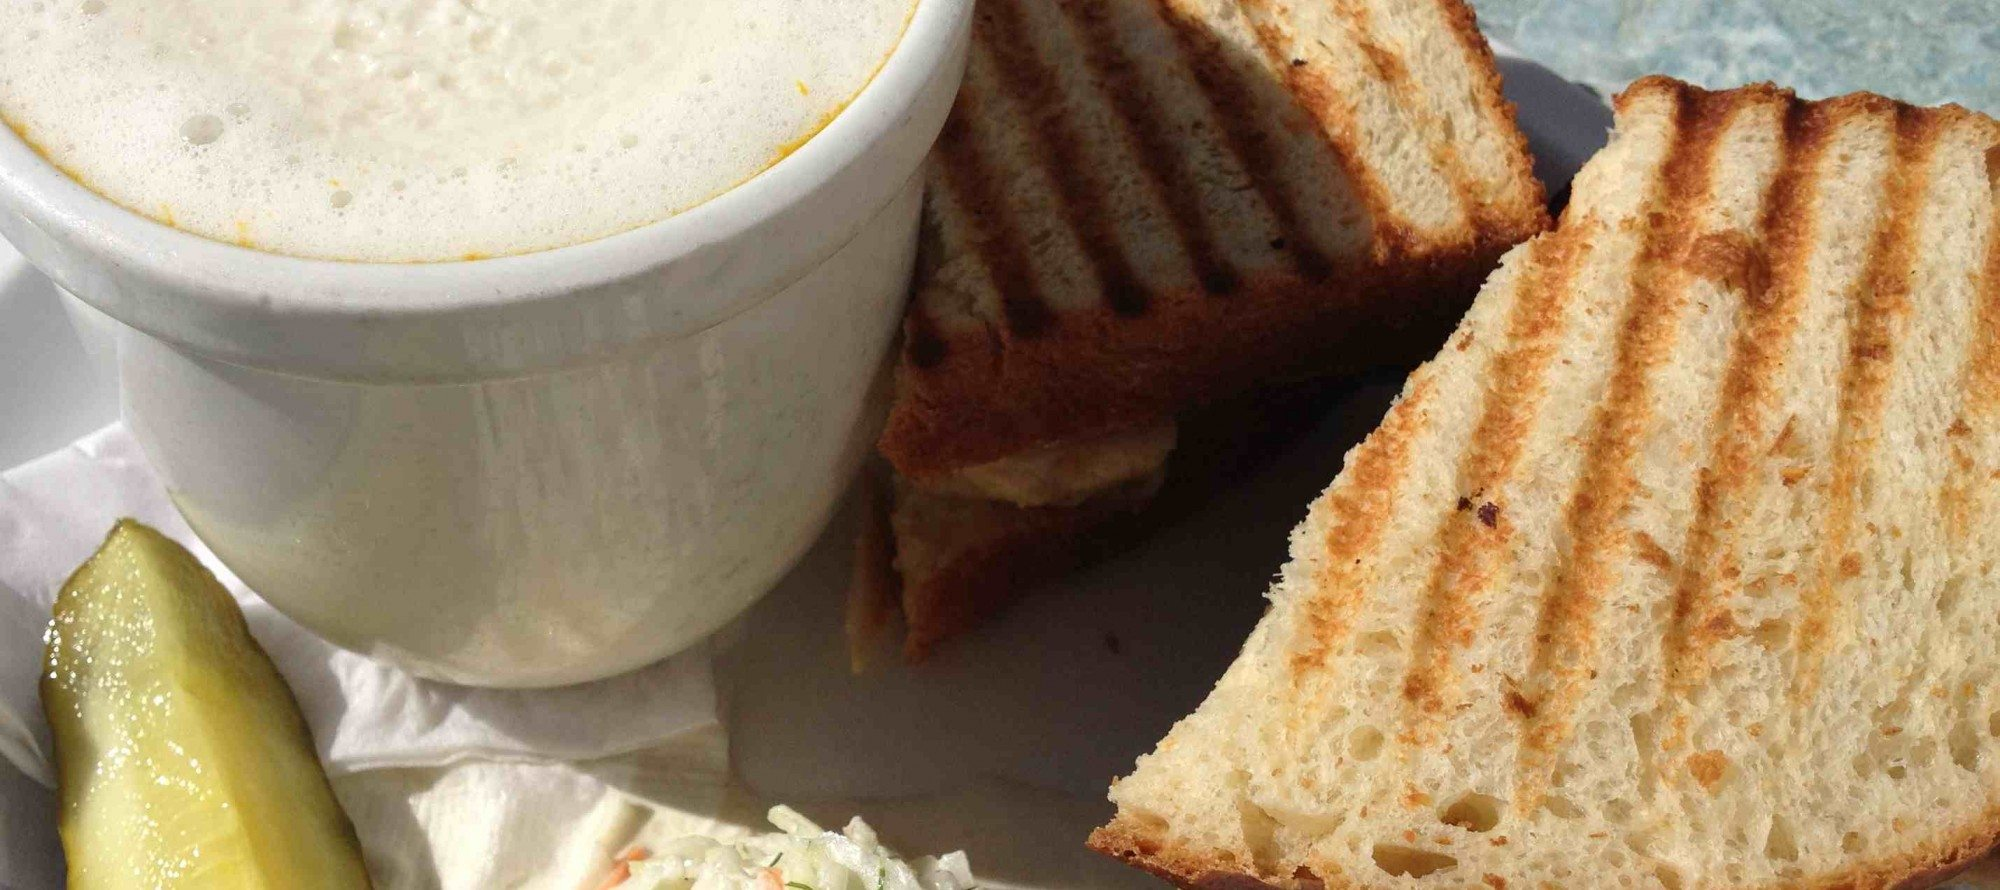 WEEKLY LUNCH PICK: Greet the fall weather with Thyme & Again's seasonally inspired soup + sandwich combo